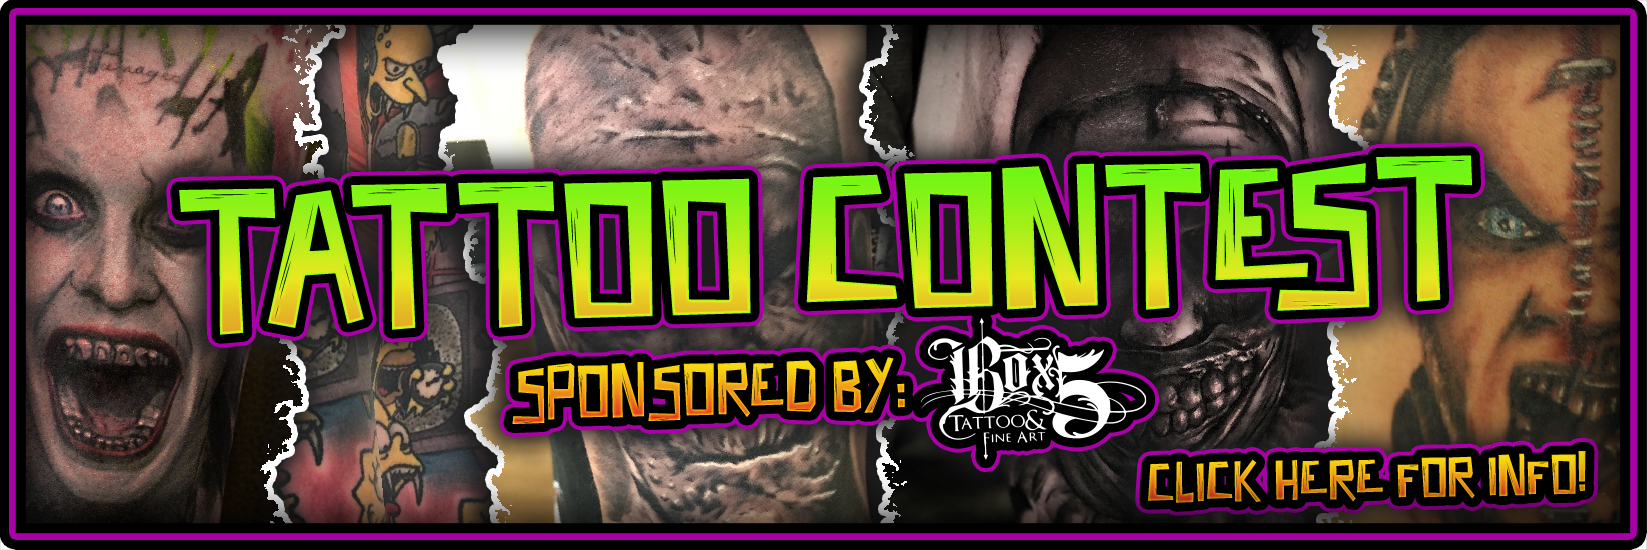 Astronomicon-2-Banner-Tattoo-Contest-Click-Here.png